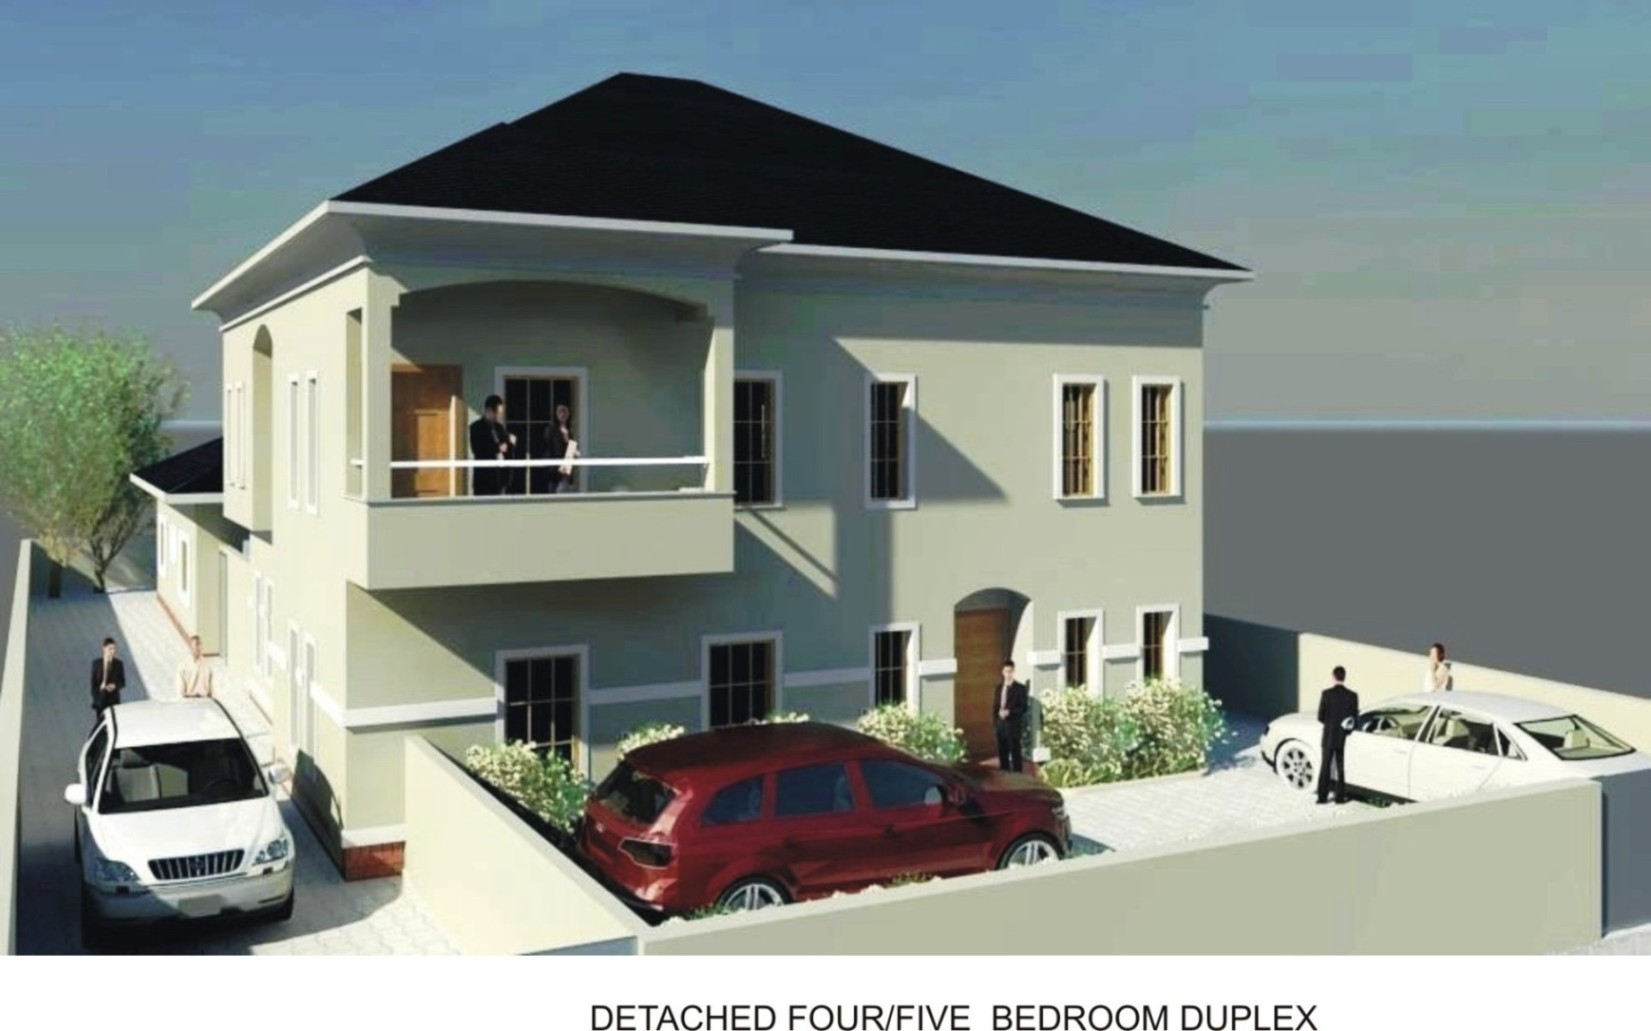 This is a simple detached 5bedroom duplex with long projected windows and a spacious terrace this type of building sited on a standard plot of land